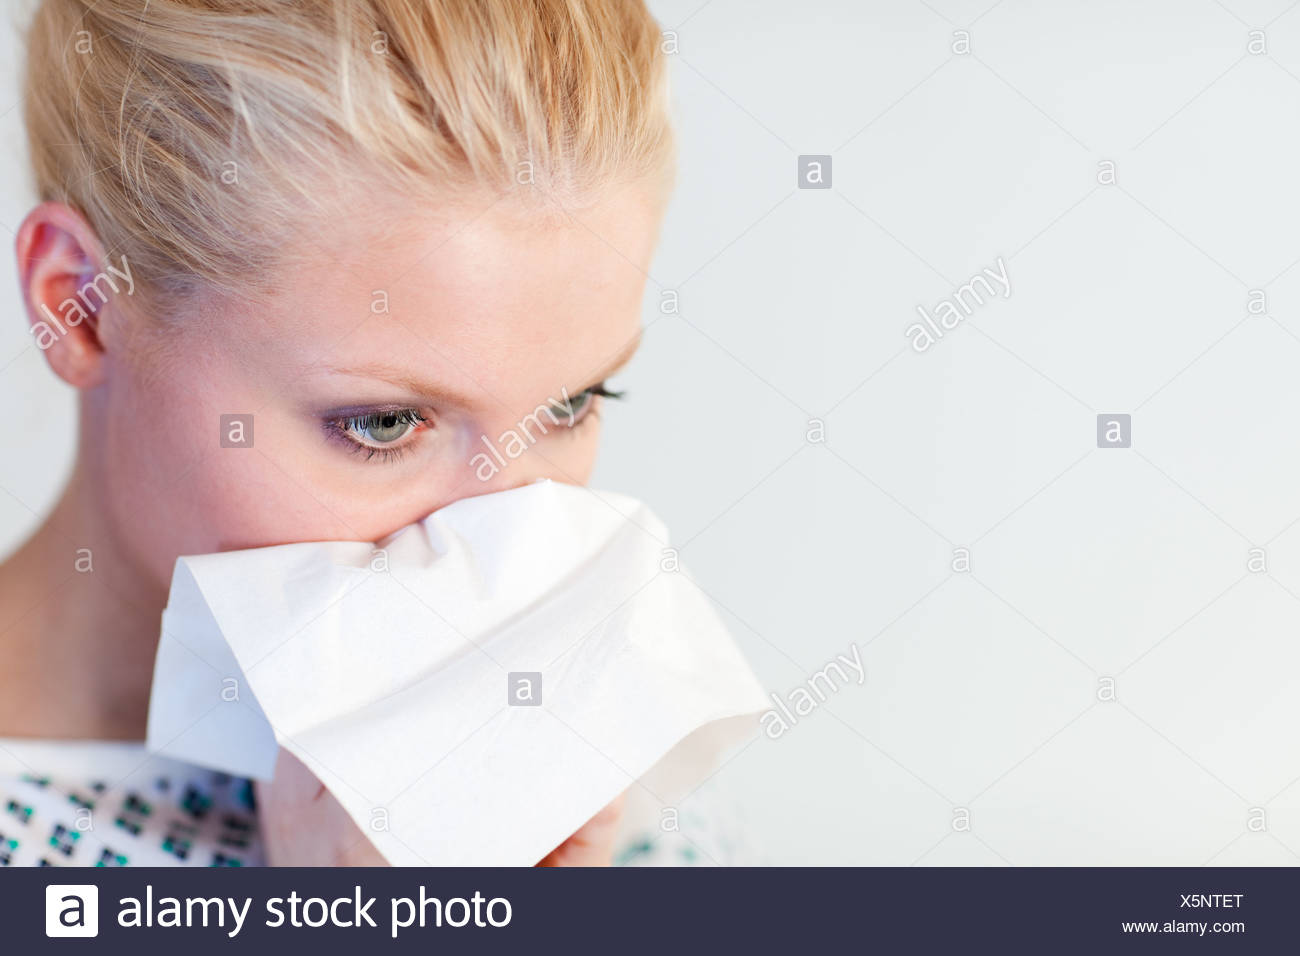 Patient with the flu - Stock Image